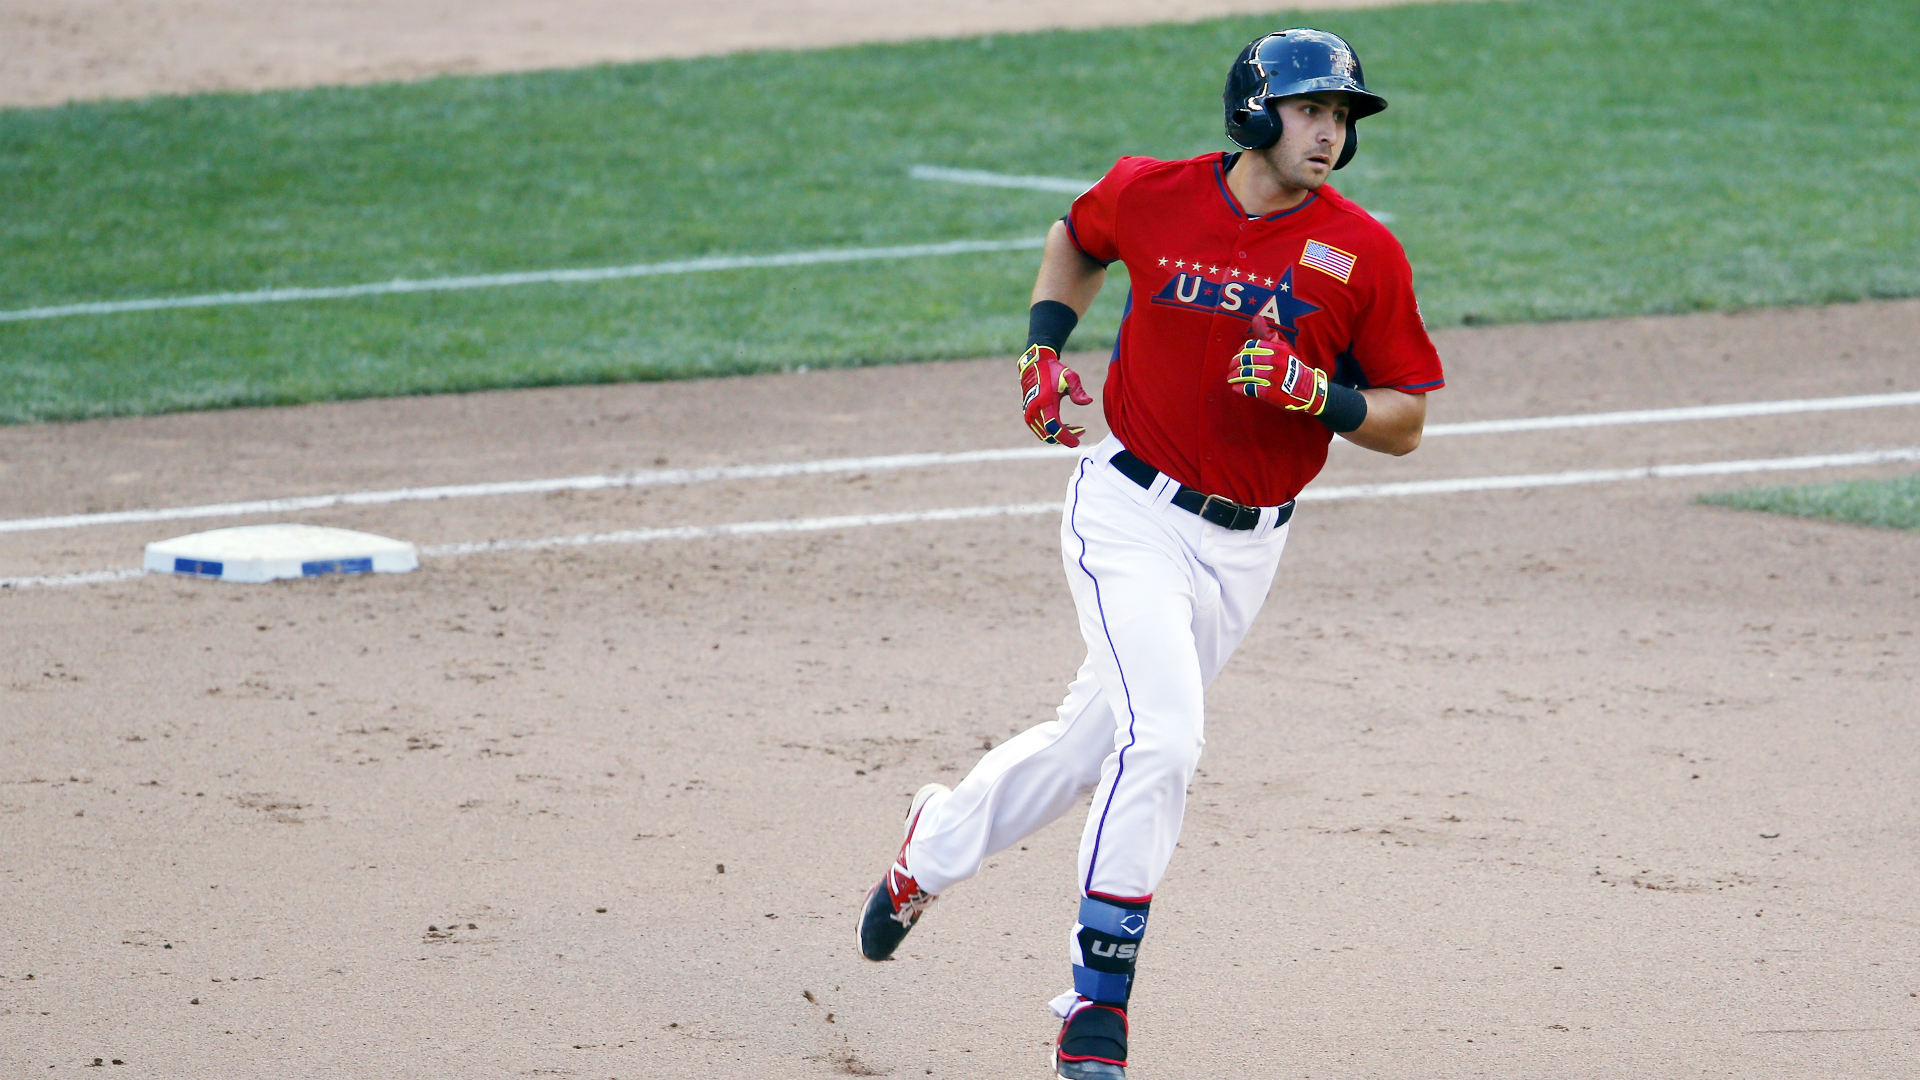 2014 Futures Game: Rangers prospect Gallo wins MVP